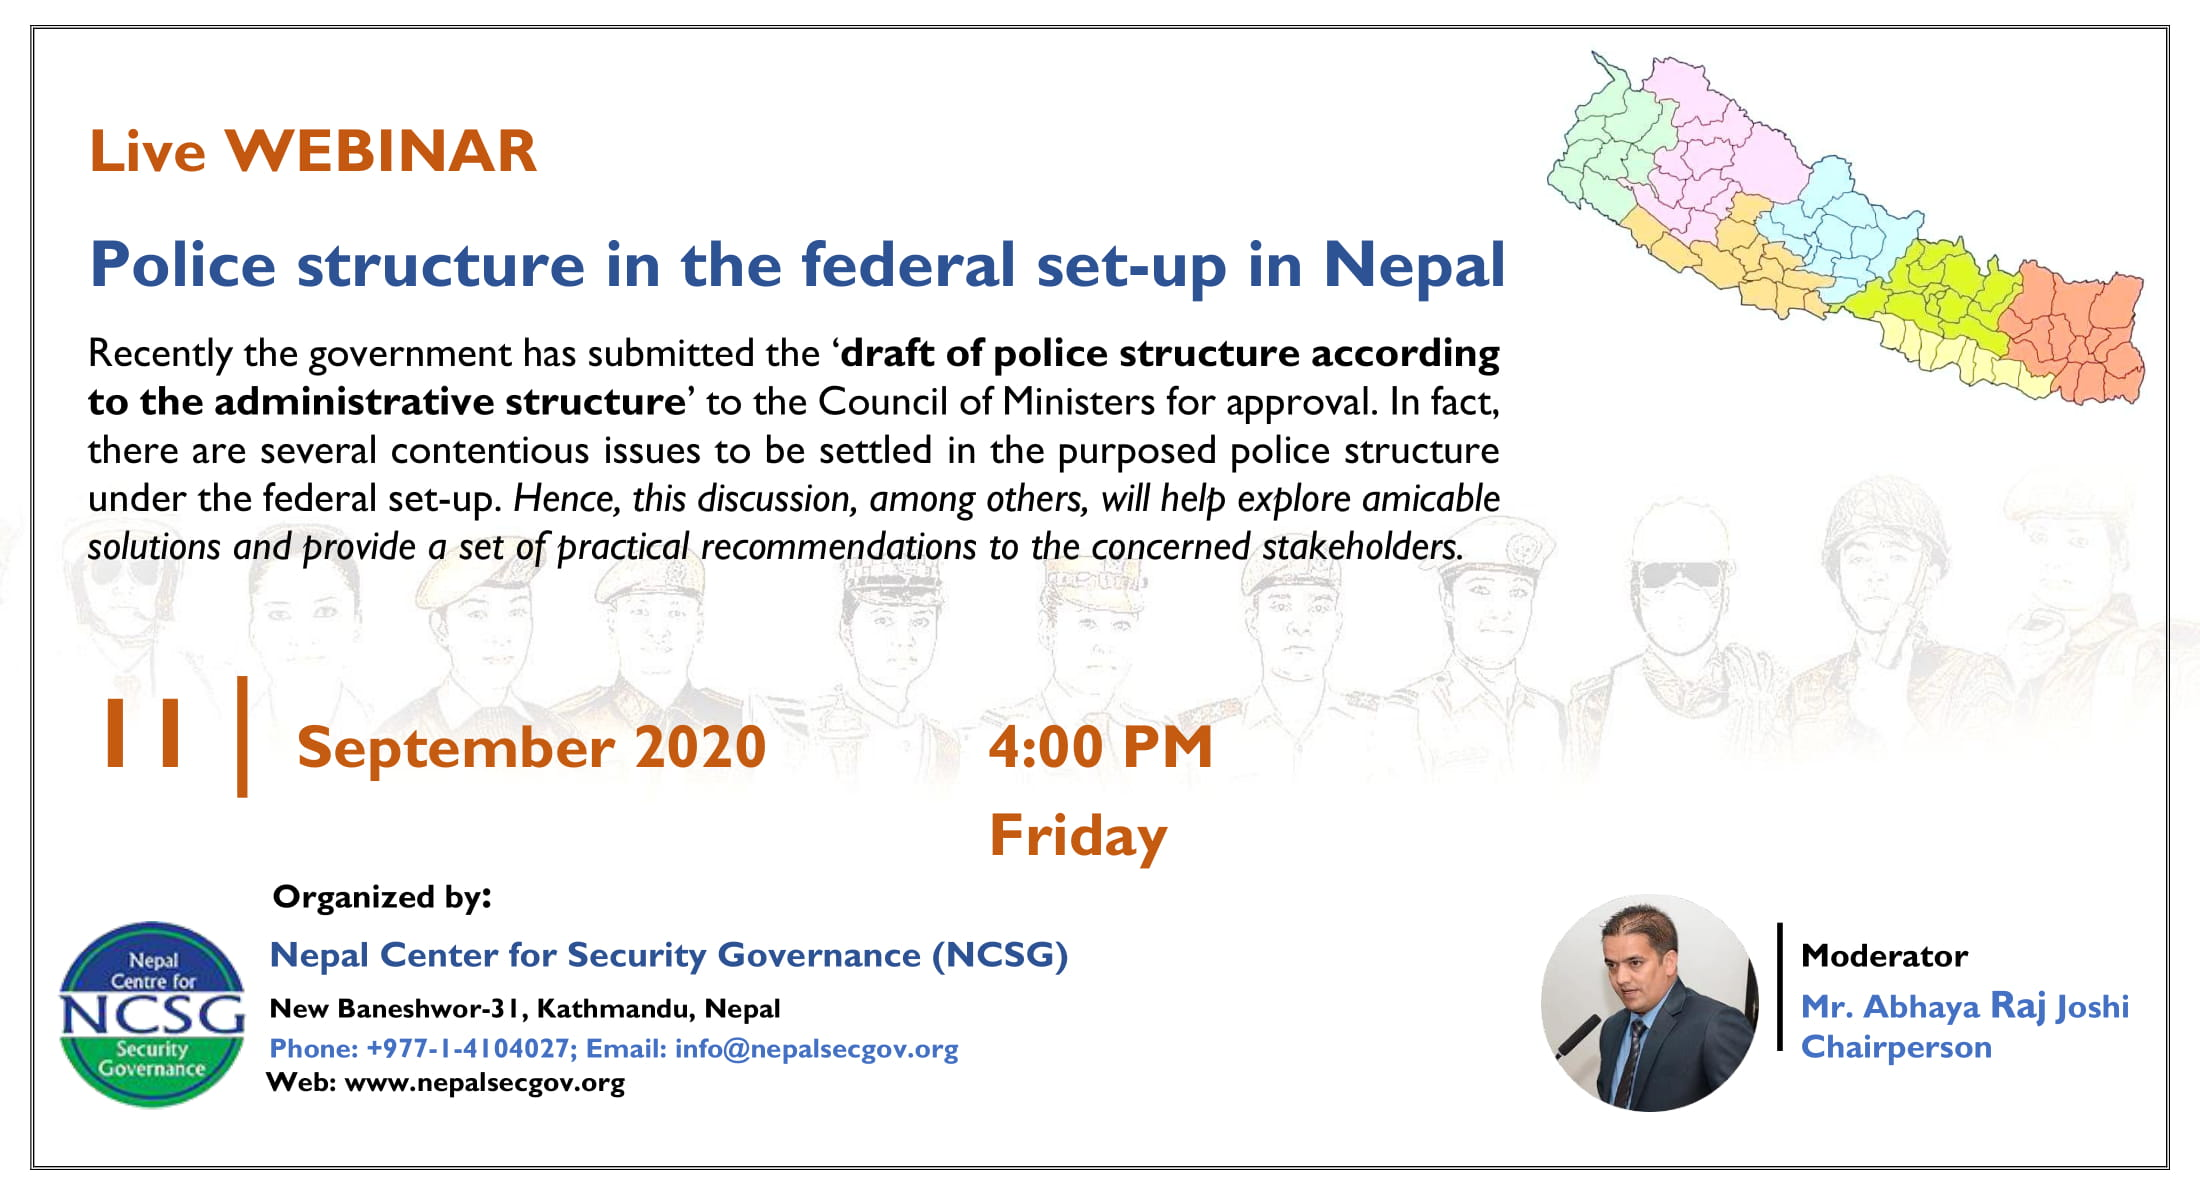 Webinar On Police Structure In The Federal Set-Up In Nepal